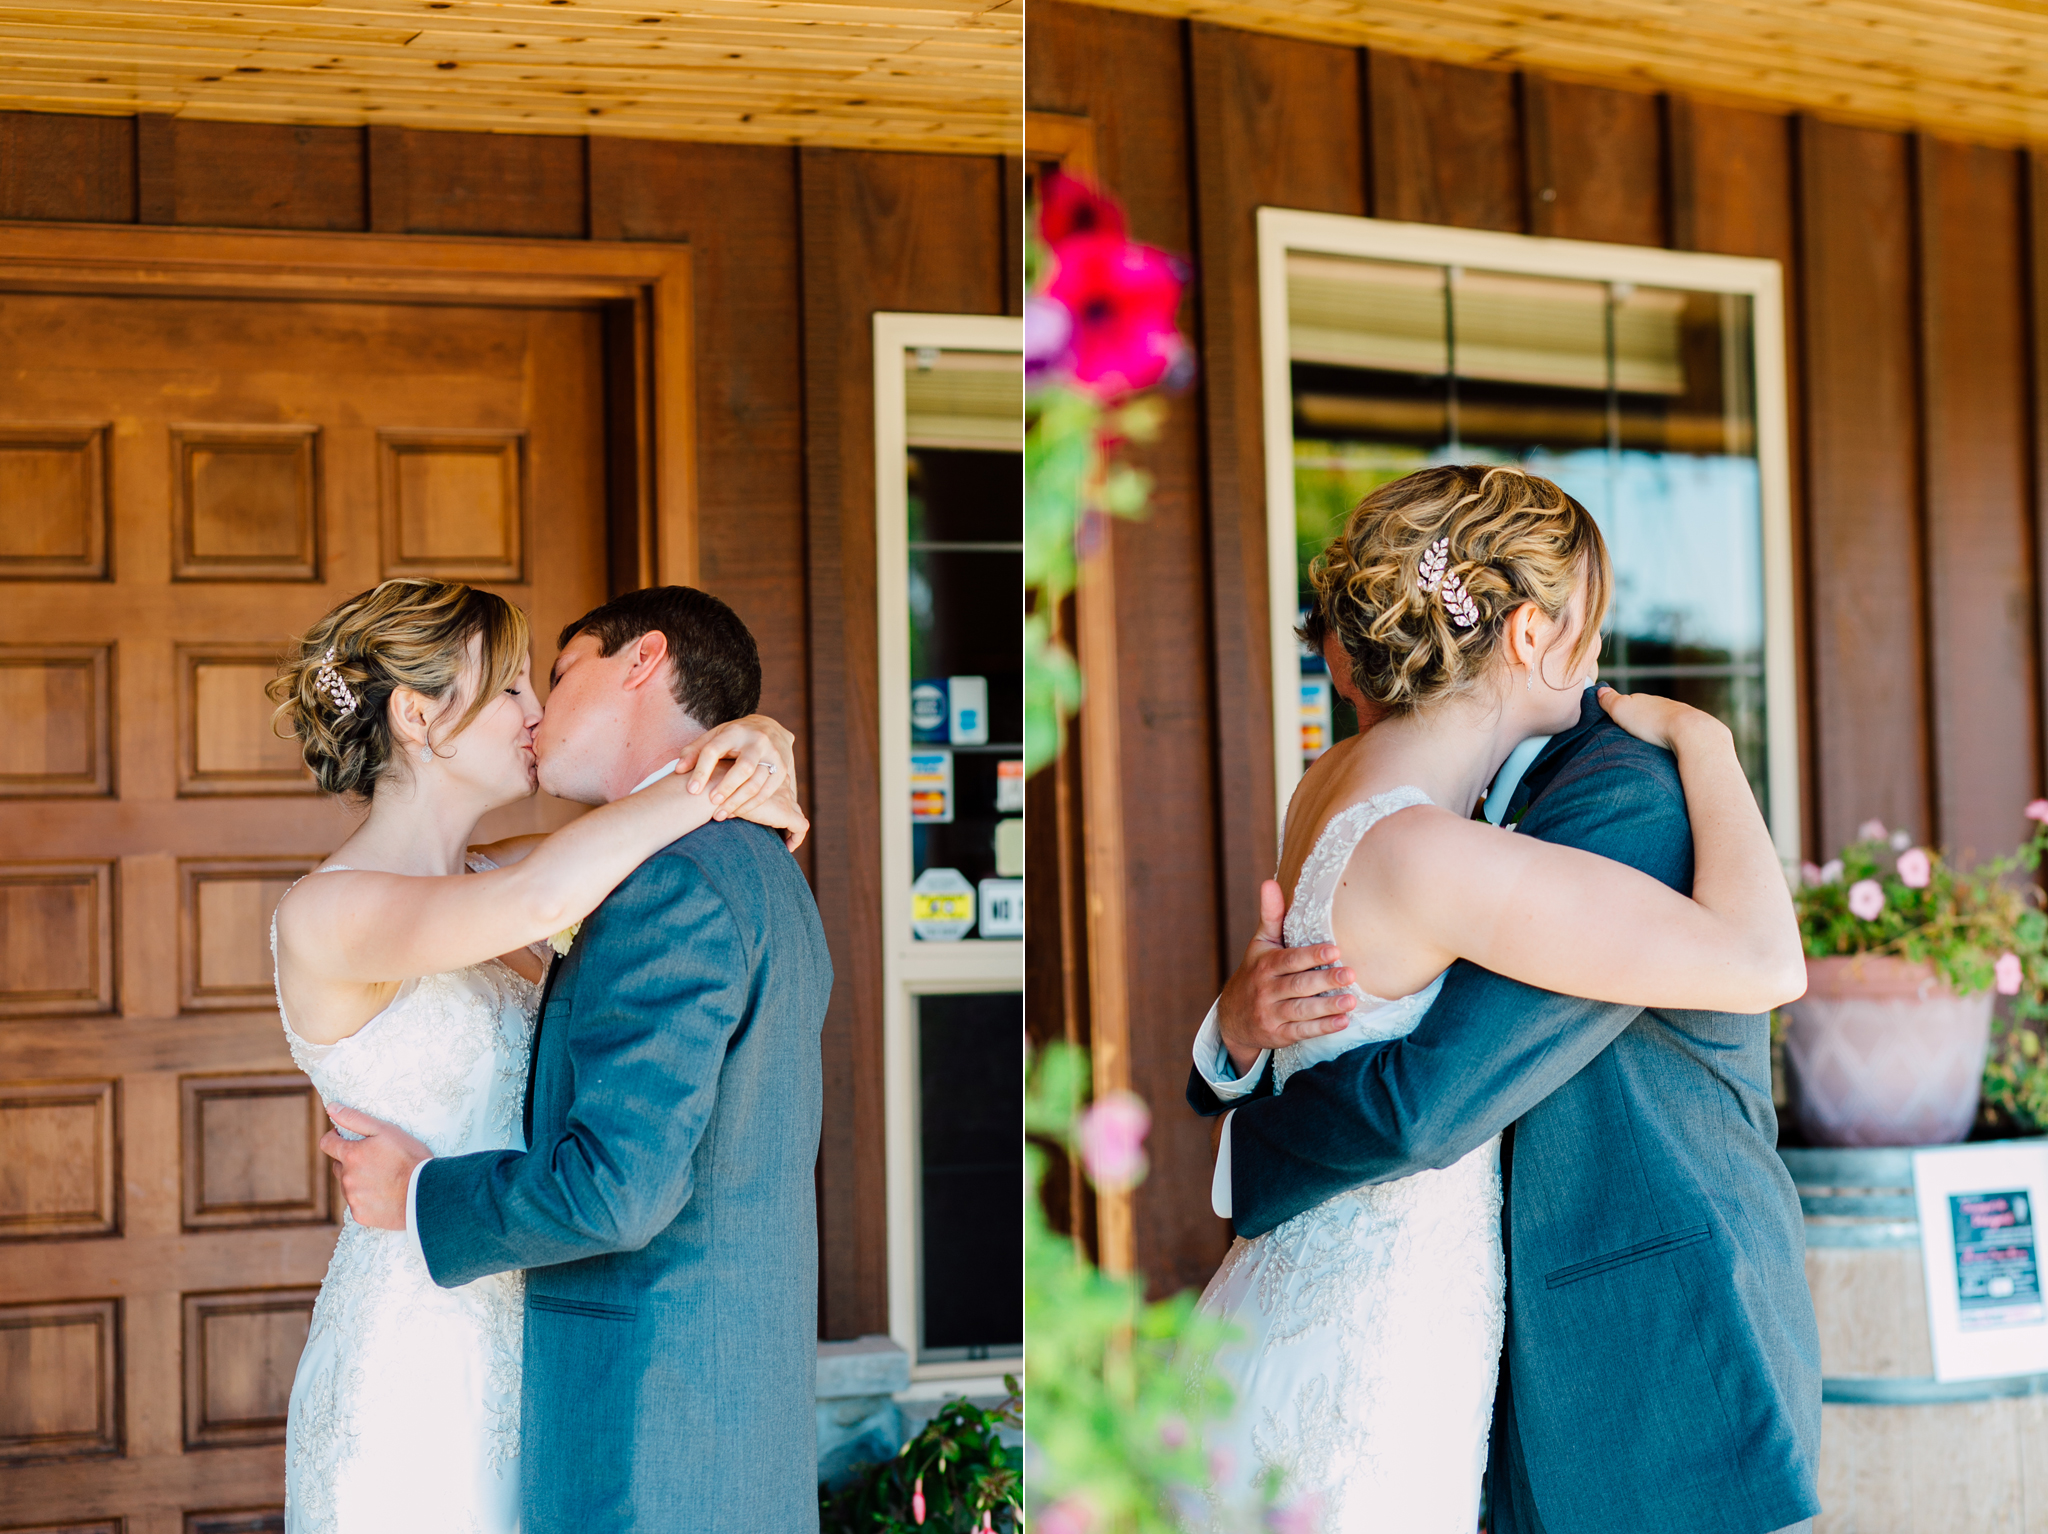 012-bellingham-wedding-photographer-samson-winery-katheryn-moran.jpg